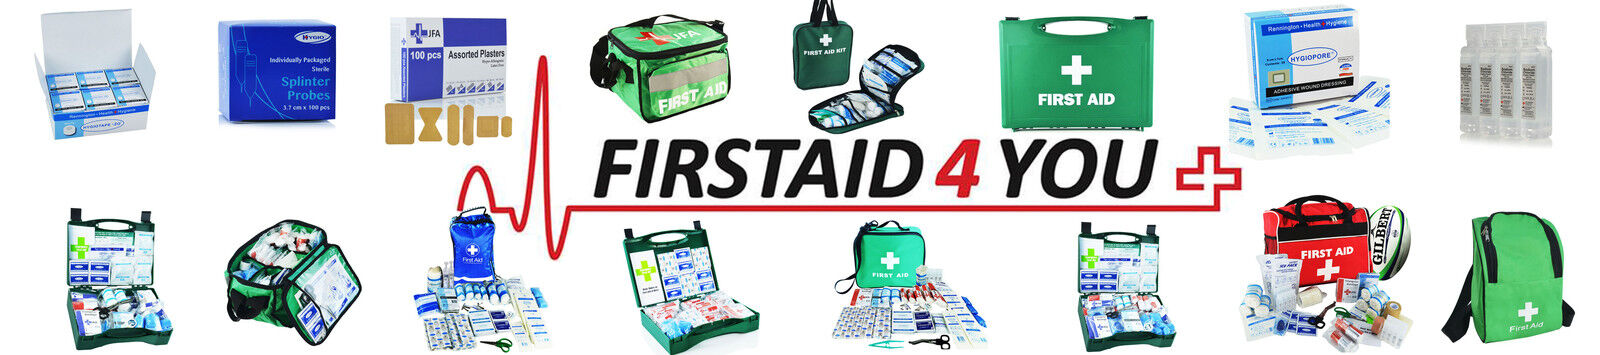 Firstaid4you